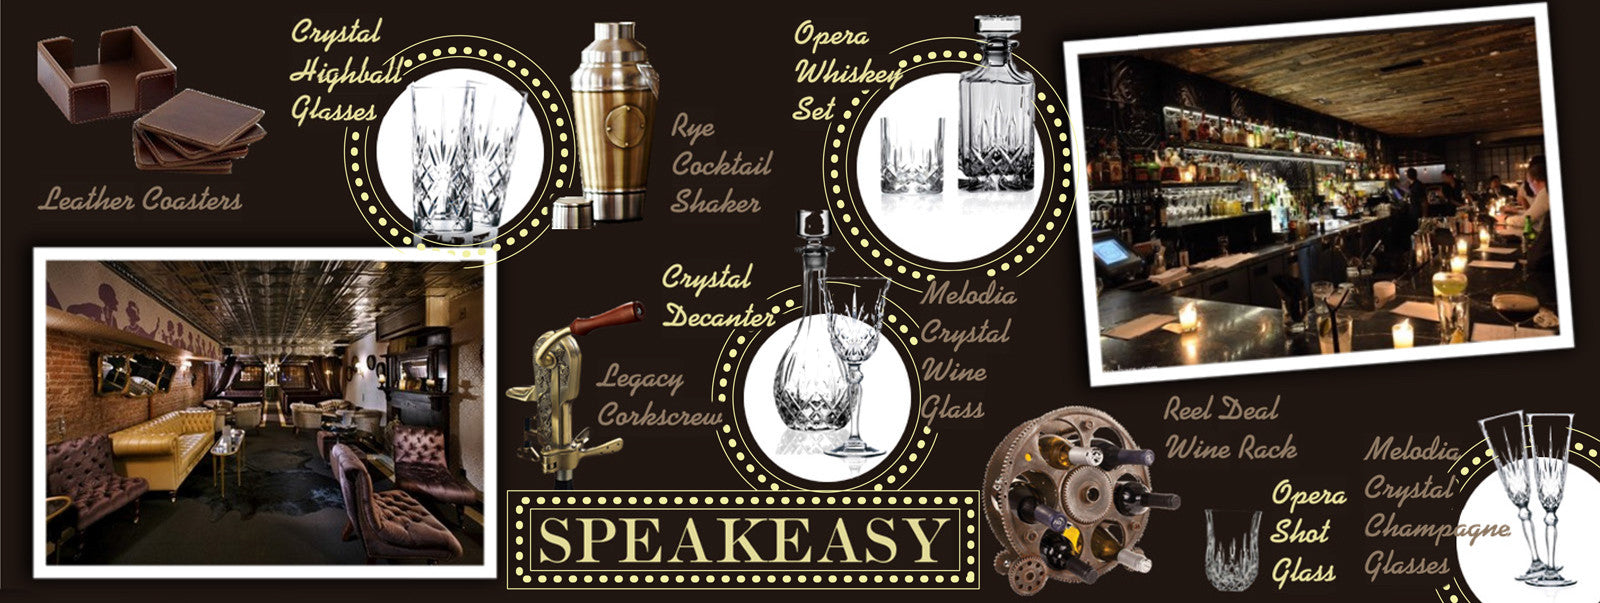 http://barcartbar.com/collections/speakeasy